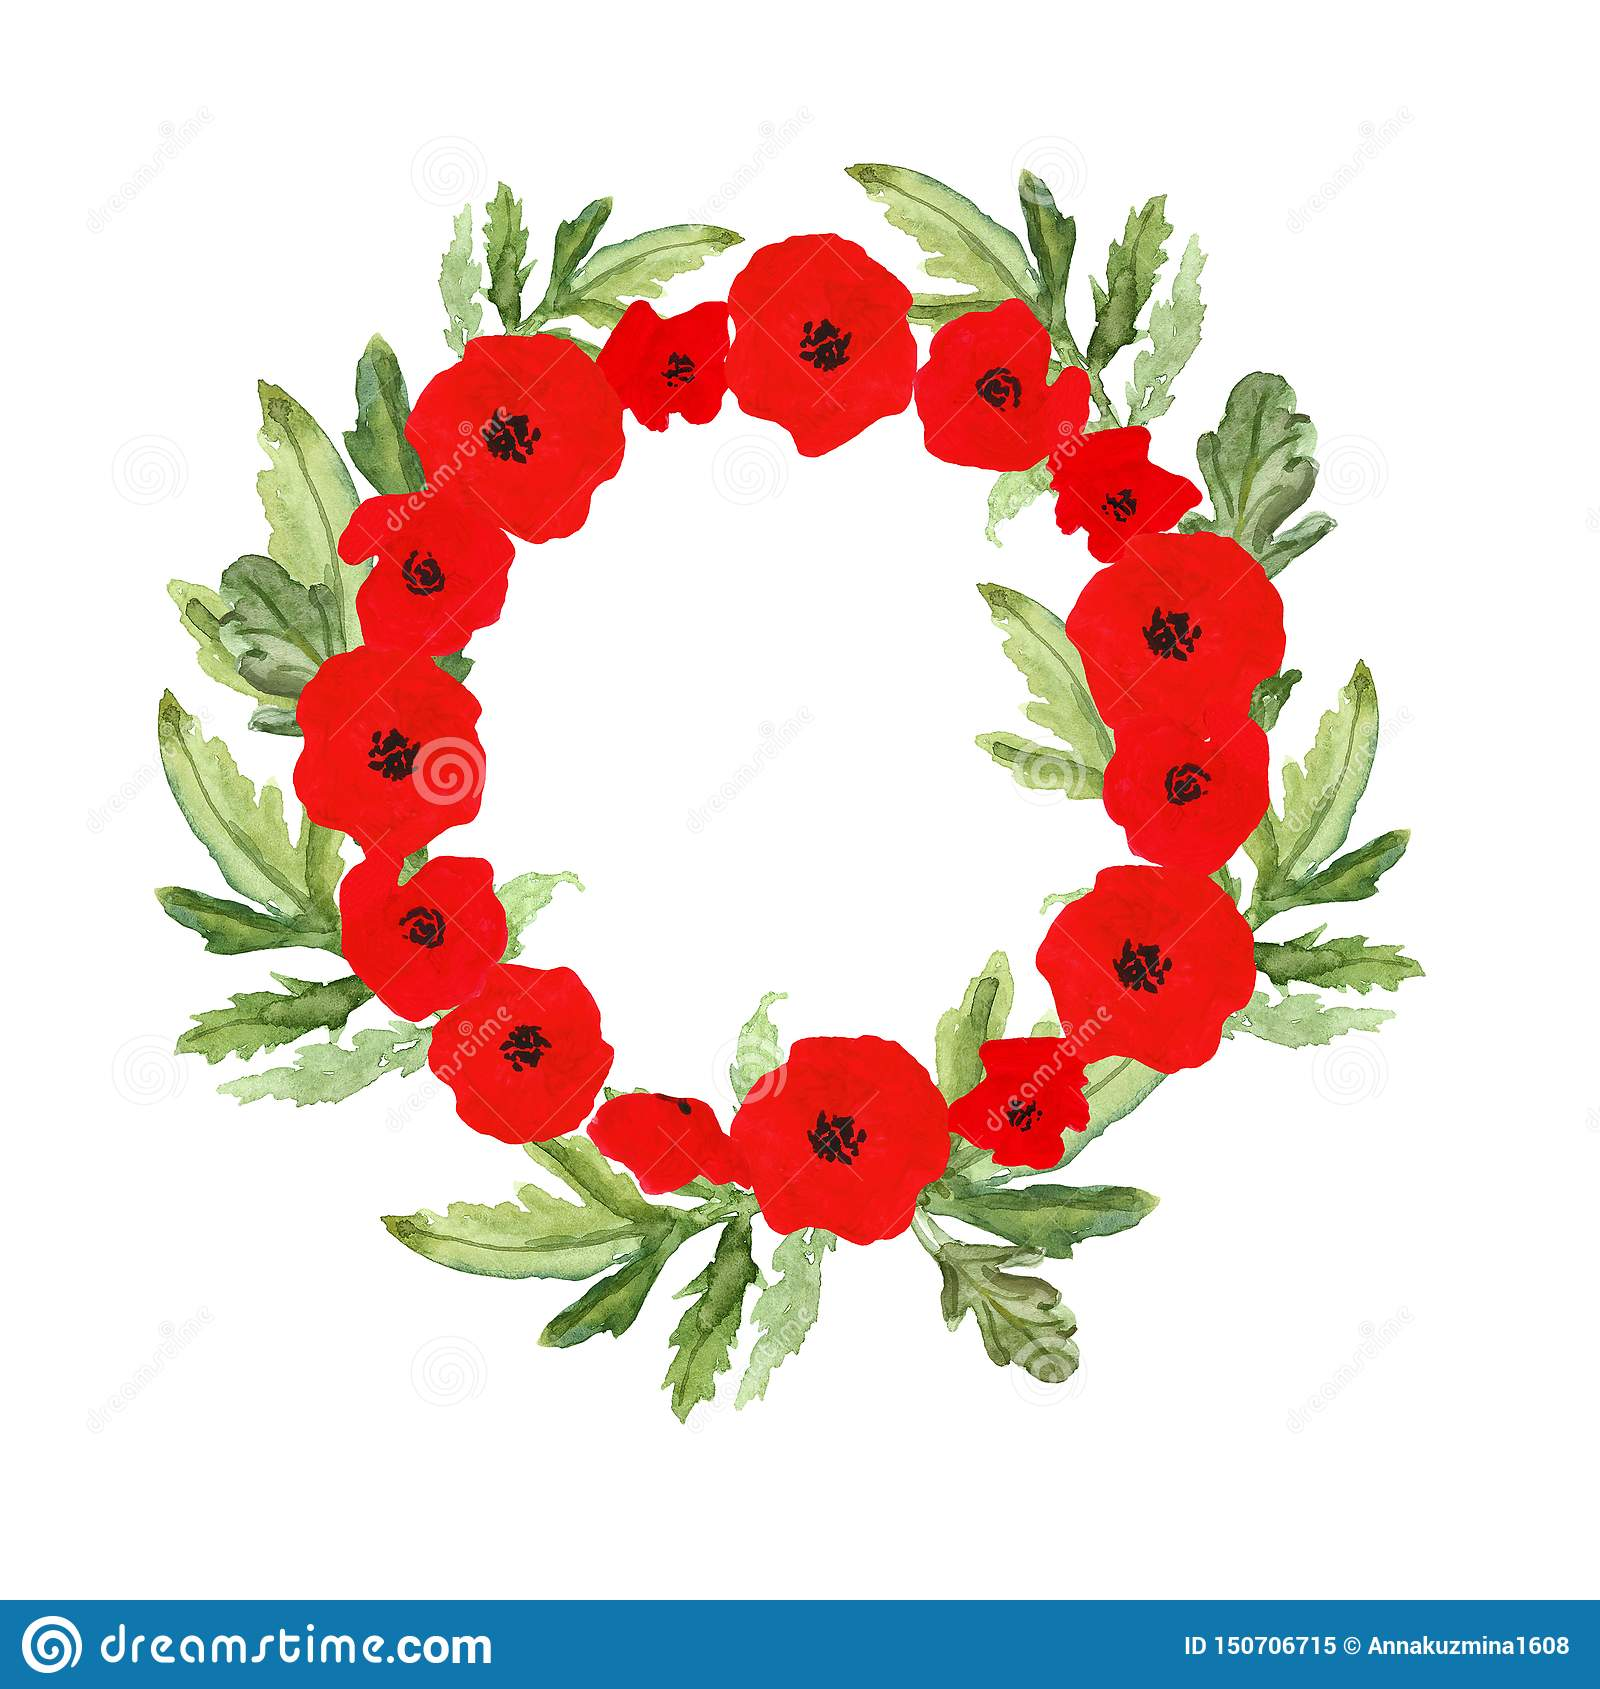 130 Anzac Day Wreath Photos Free Royalty Free Stock Photos From Dreamstime